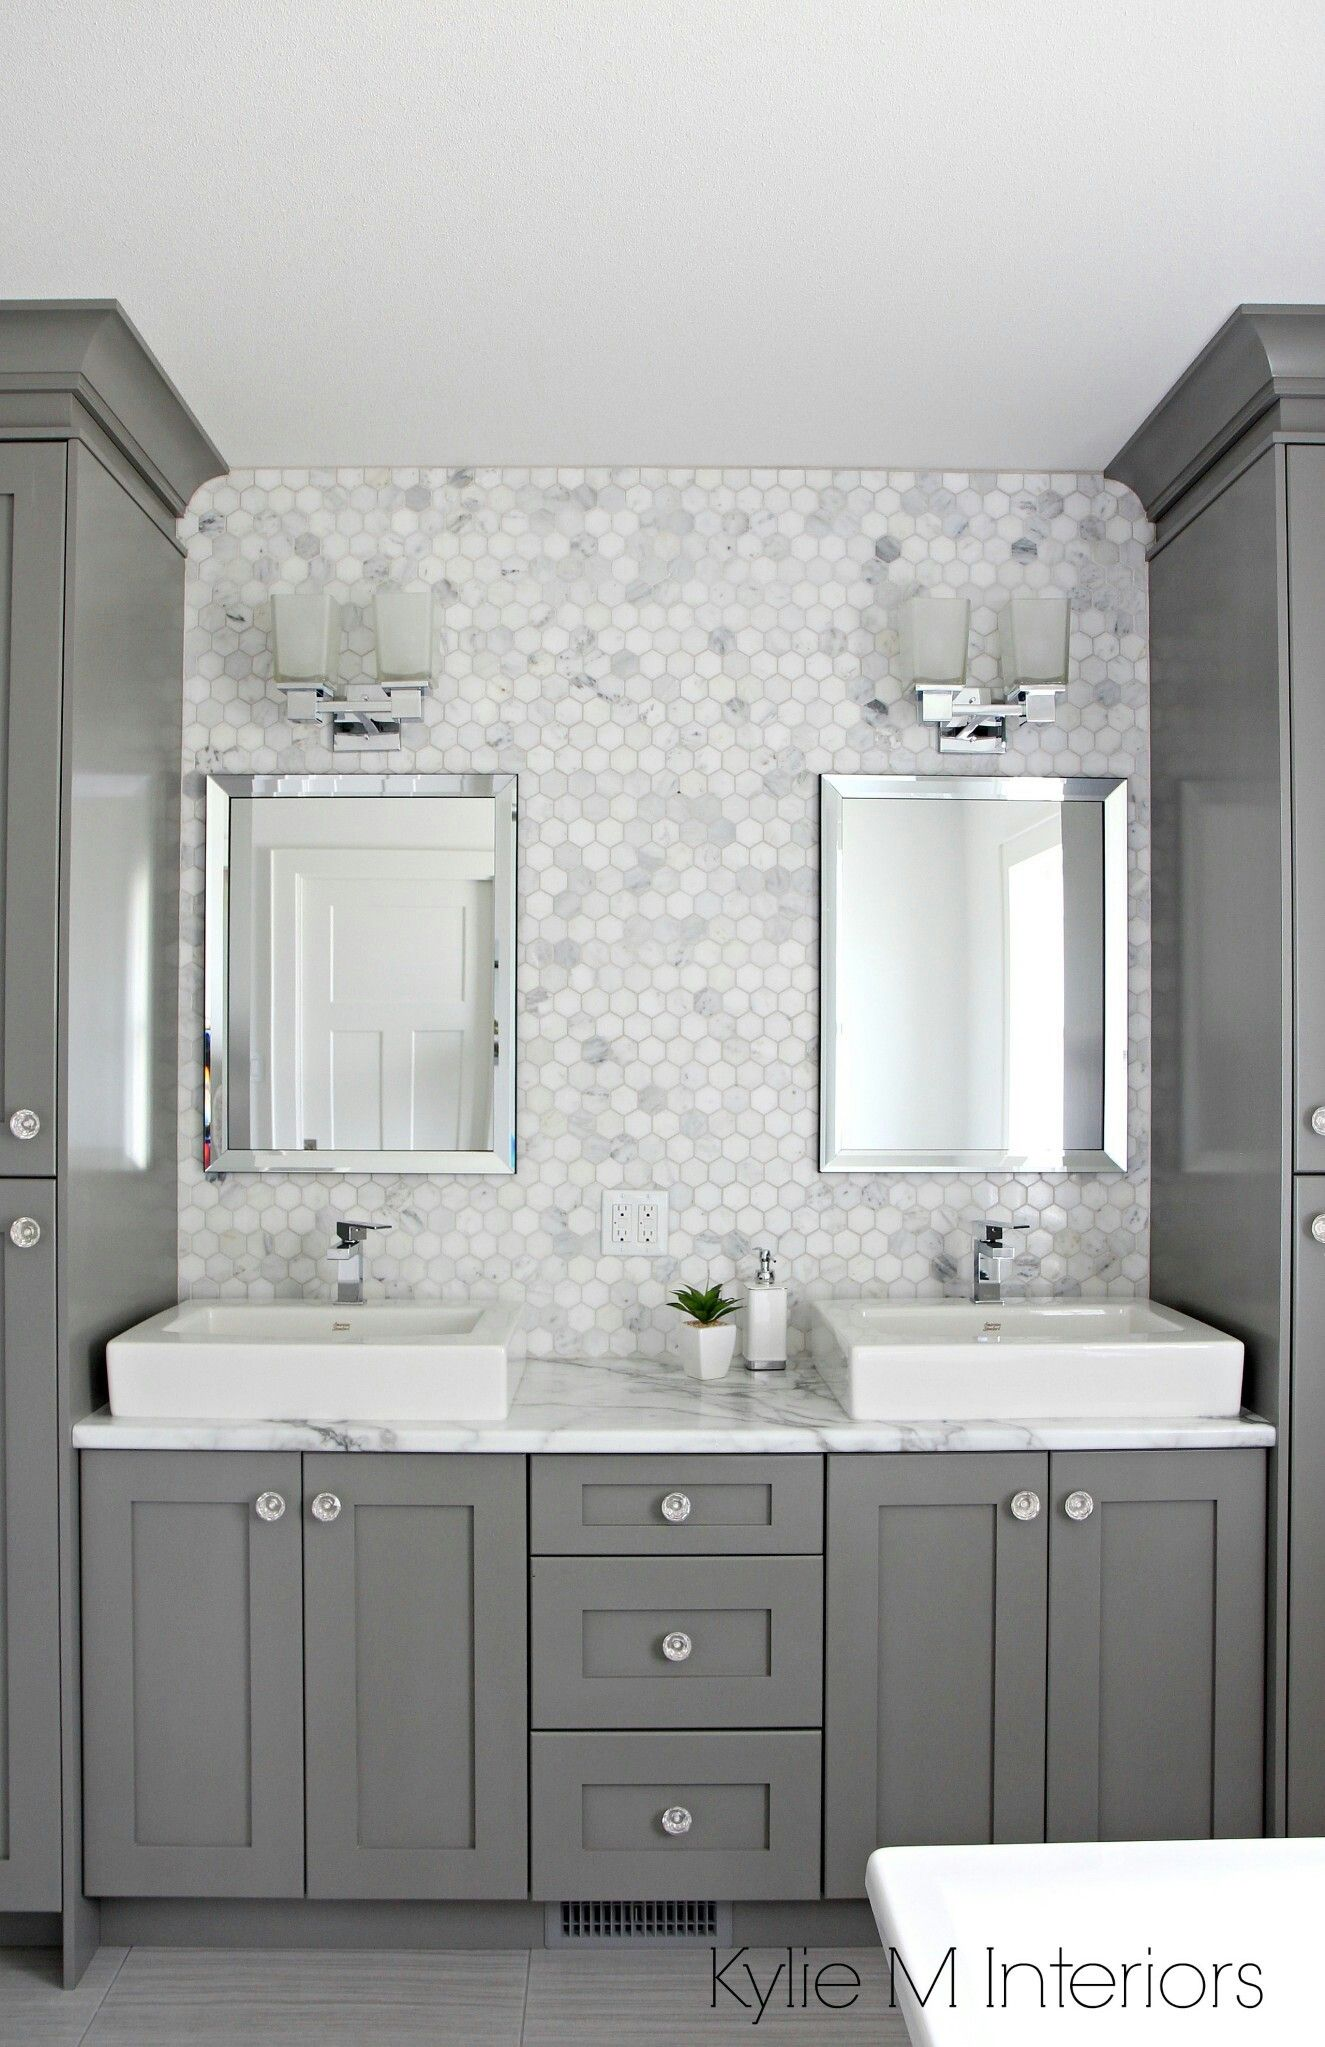 that backsplash walls bathroom ideas tile shop like artistic looks from living water